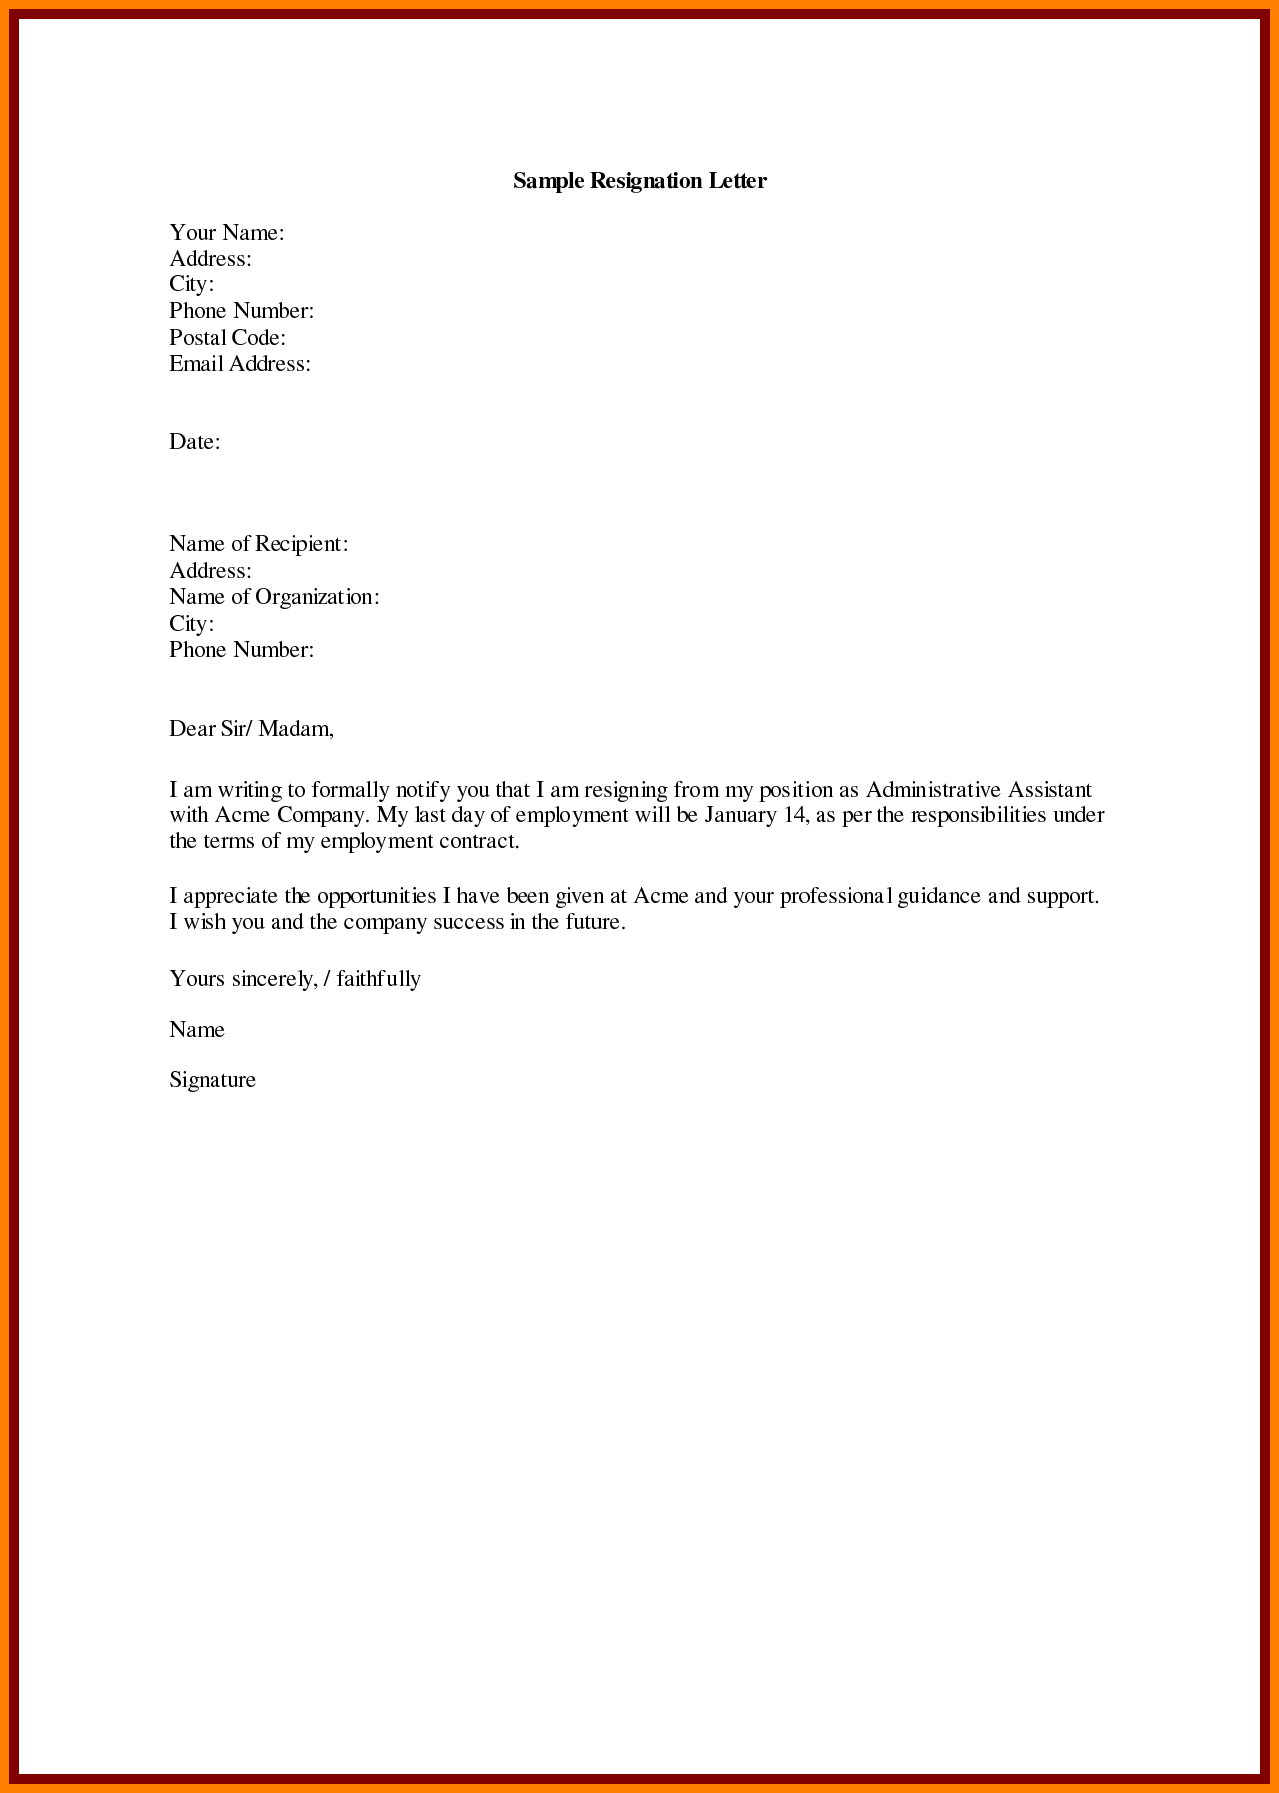 Acceptance Of Resignation Letter With Immediate Effect